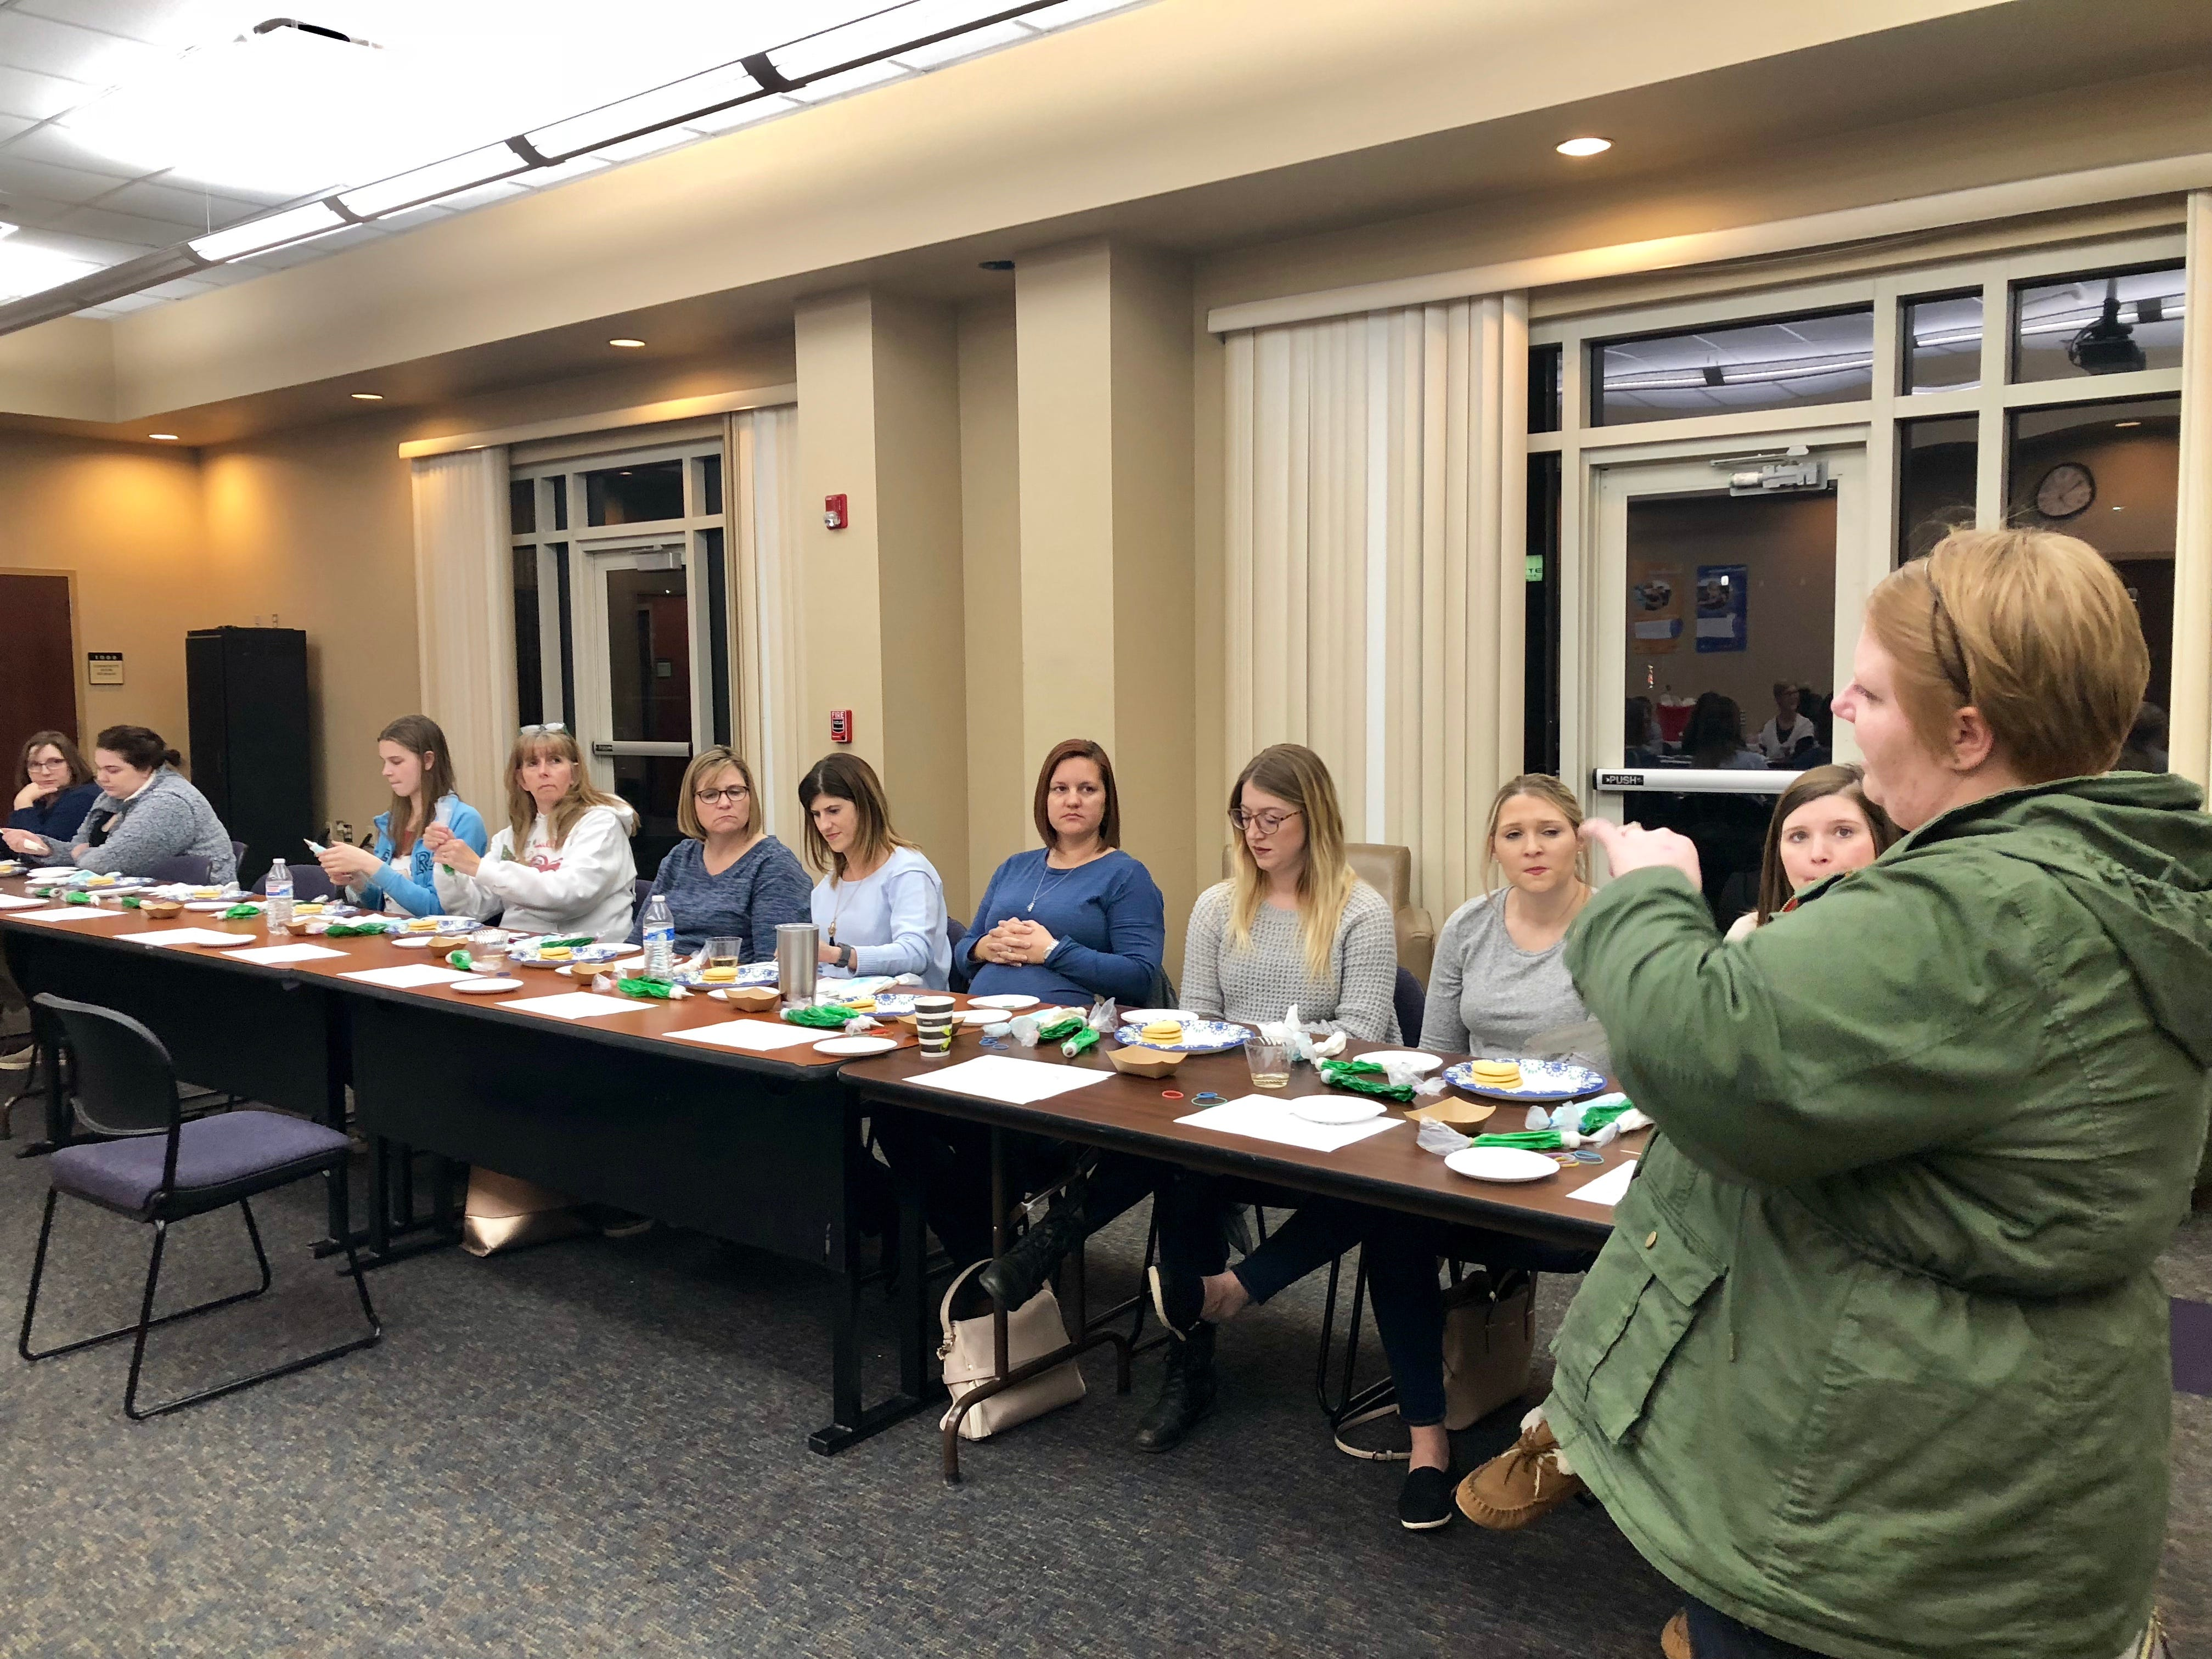 Food reporter Megan Wyatt leads a cookie-decorating workshop at The Daily Advertiser Dec. 5, 2018.